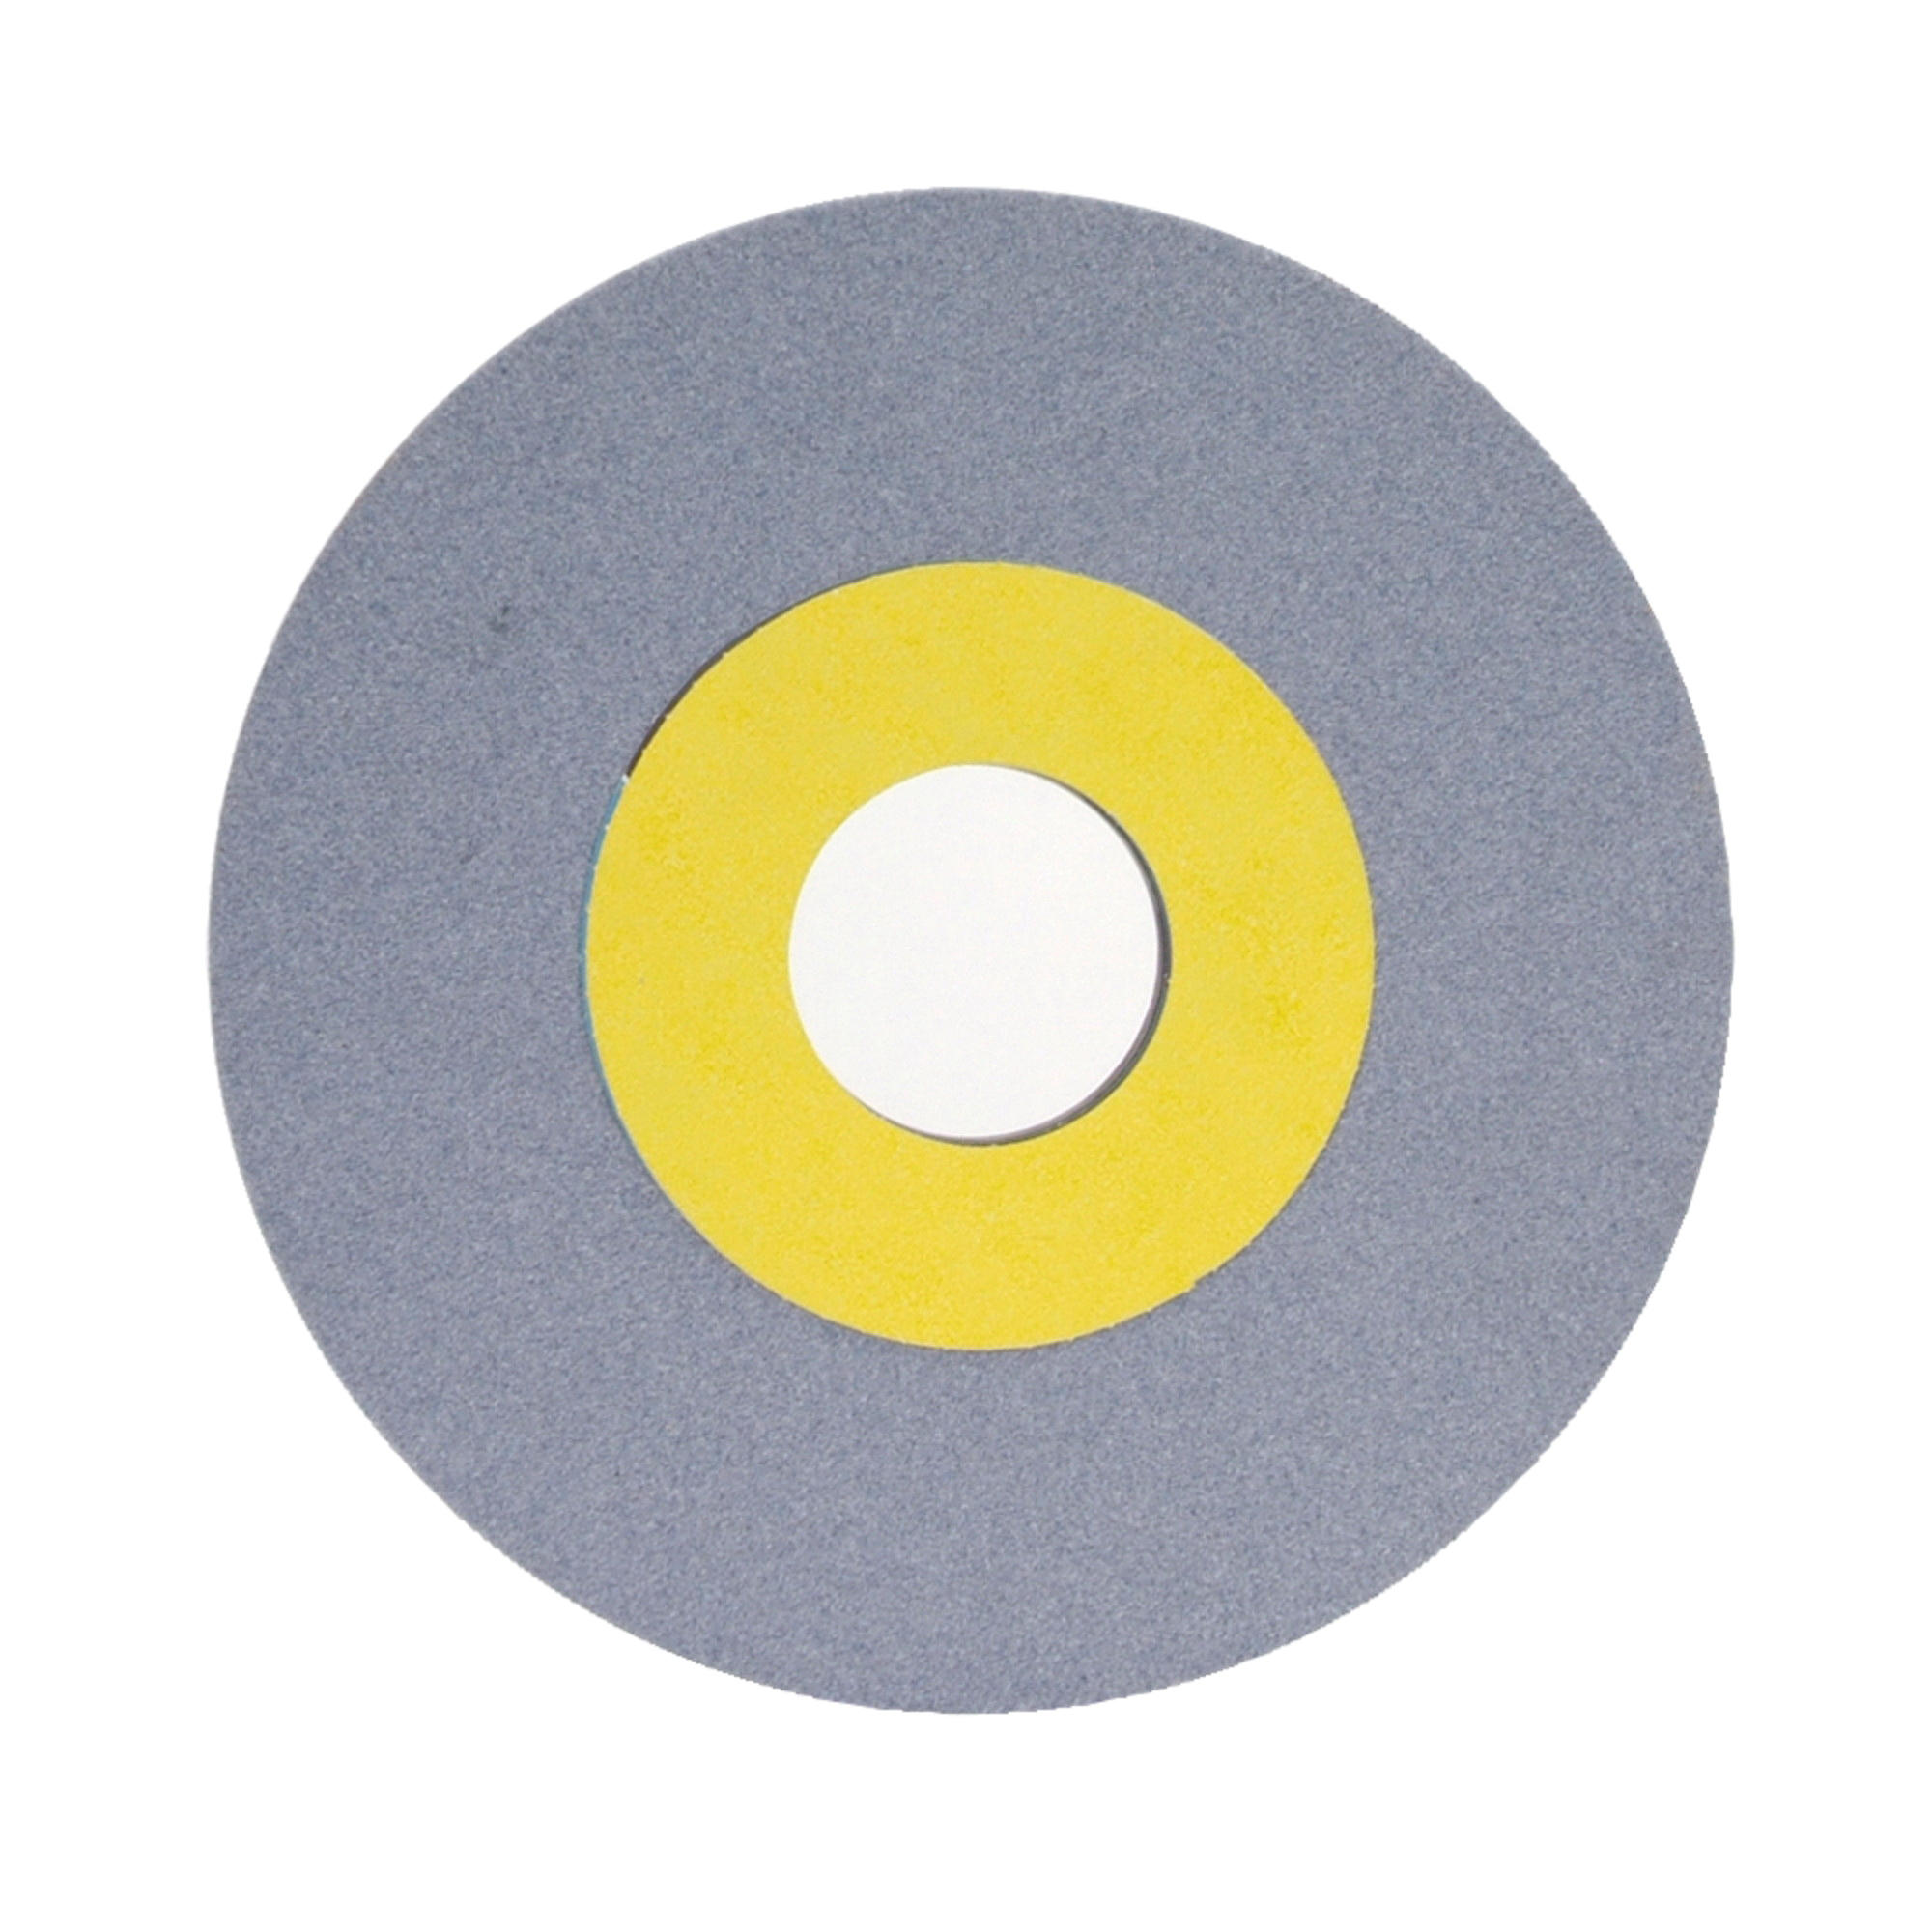 Norton® 66253262078 32AA Straight Toolroom Wheel, 12 in Dia x 1 in THK, 3 in Center Hole, 60 Grit, Aluminum Oxide Abrasive